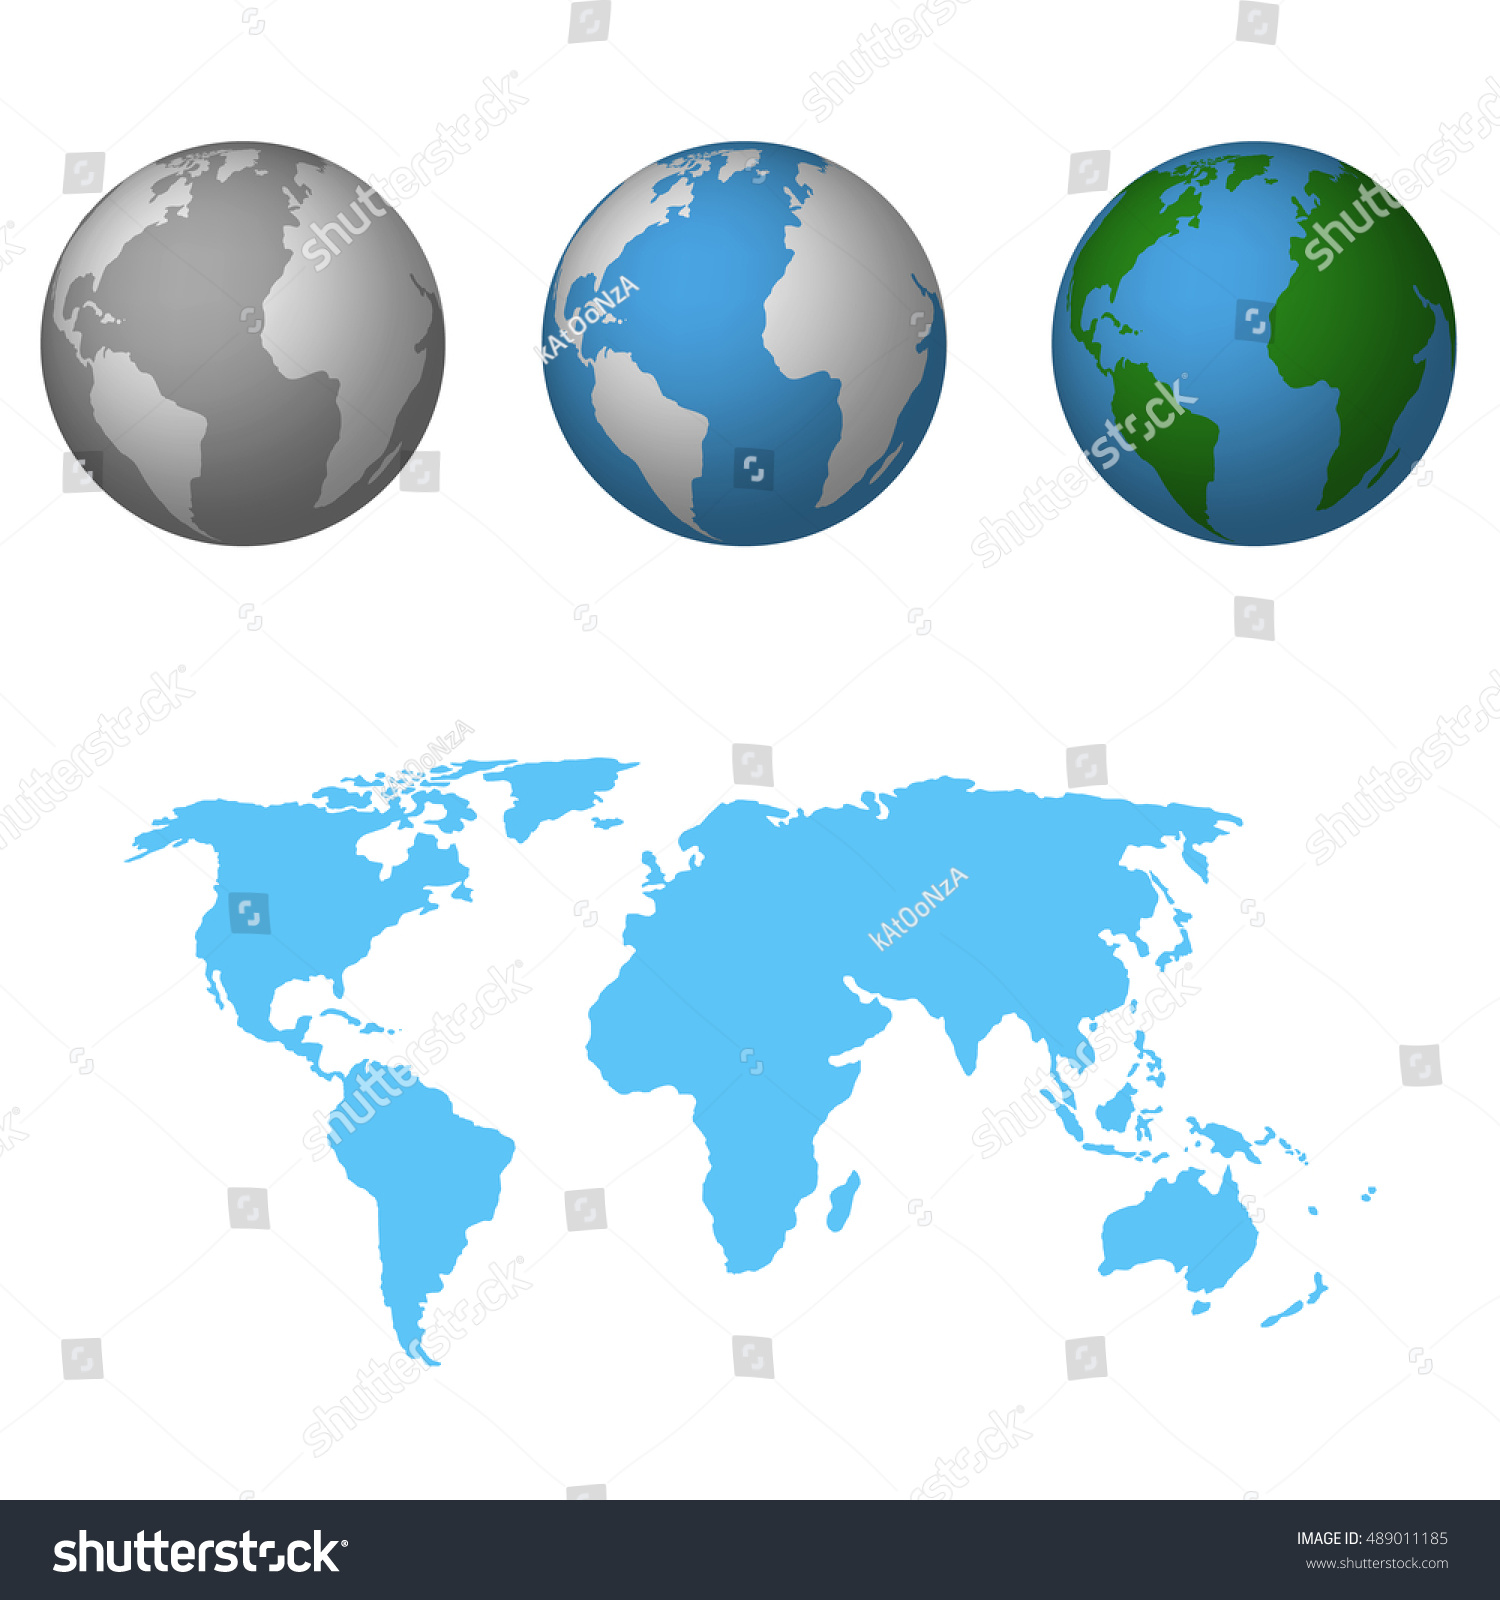 Earth world map flat icon vector stock vector 489011185 shutterstock earth with world map flat icon vector illustration gumiabroncs Image collections